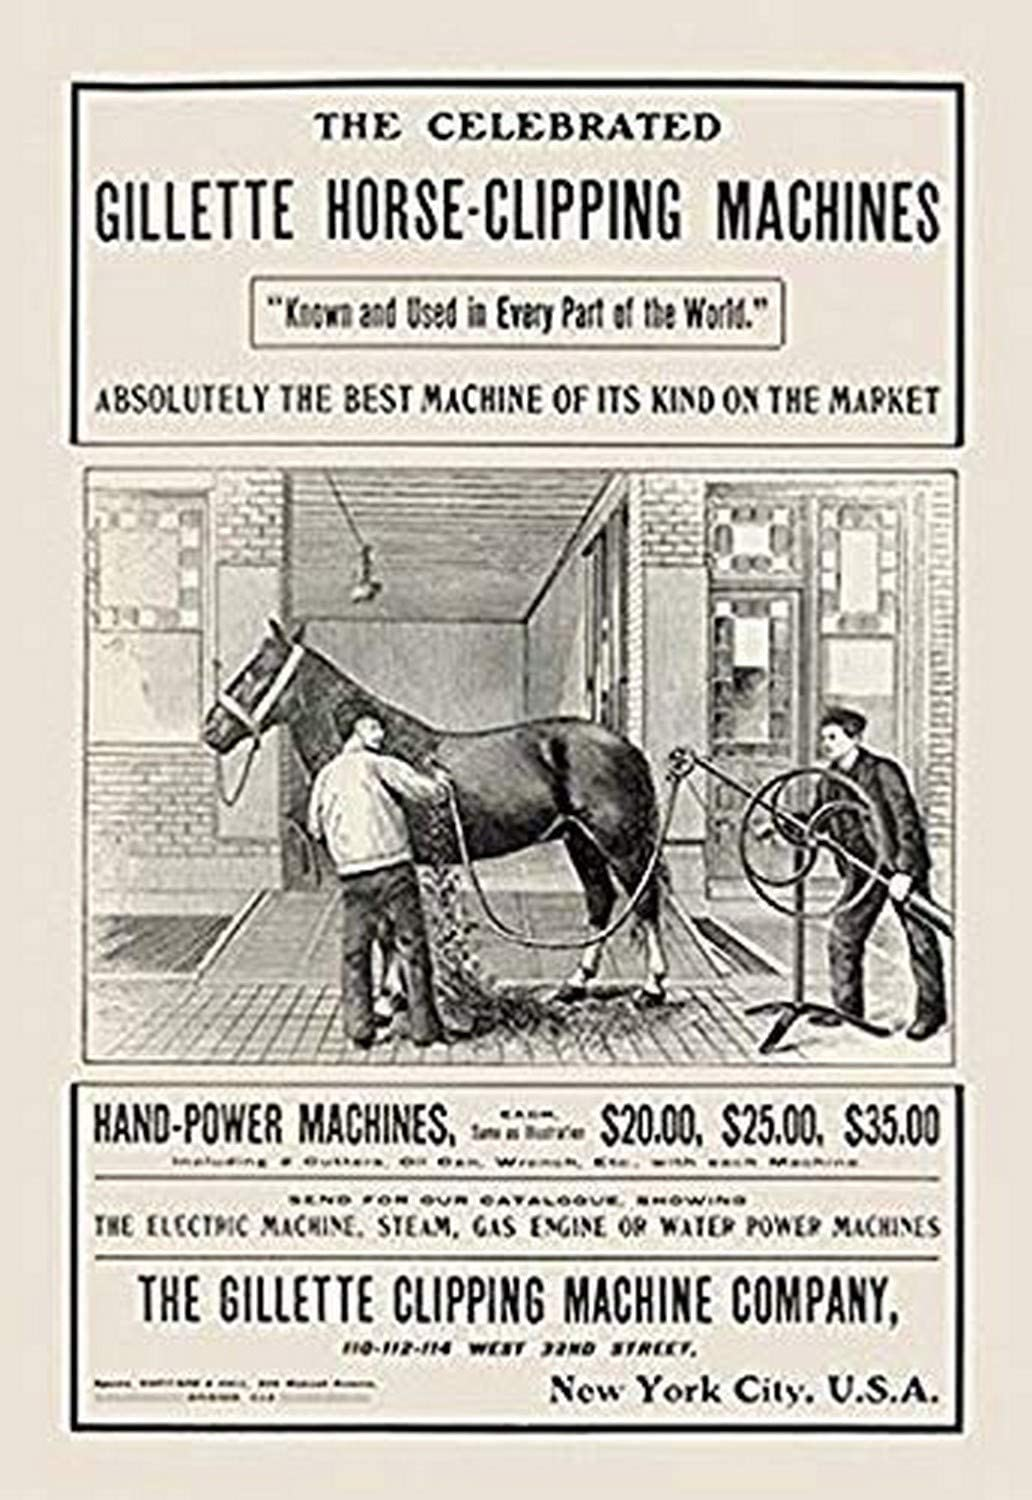 """Buyenlarge 0-587-00865-2-C4466 The Celebrated Gillette Horse-Clipping Machines Gallery Wrapped Canvas Print, 44"""" x 66"""""""